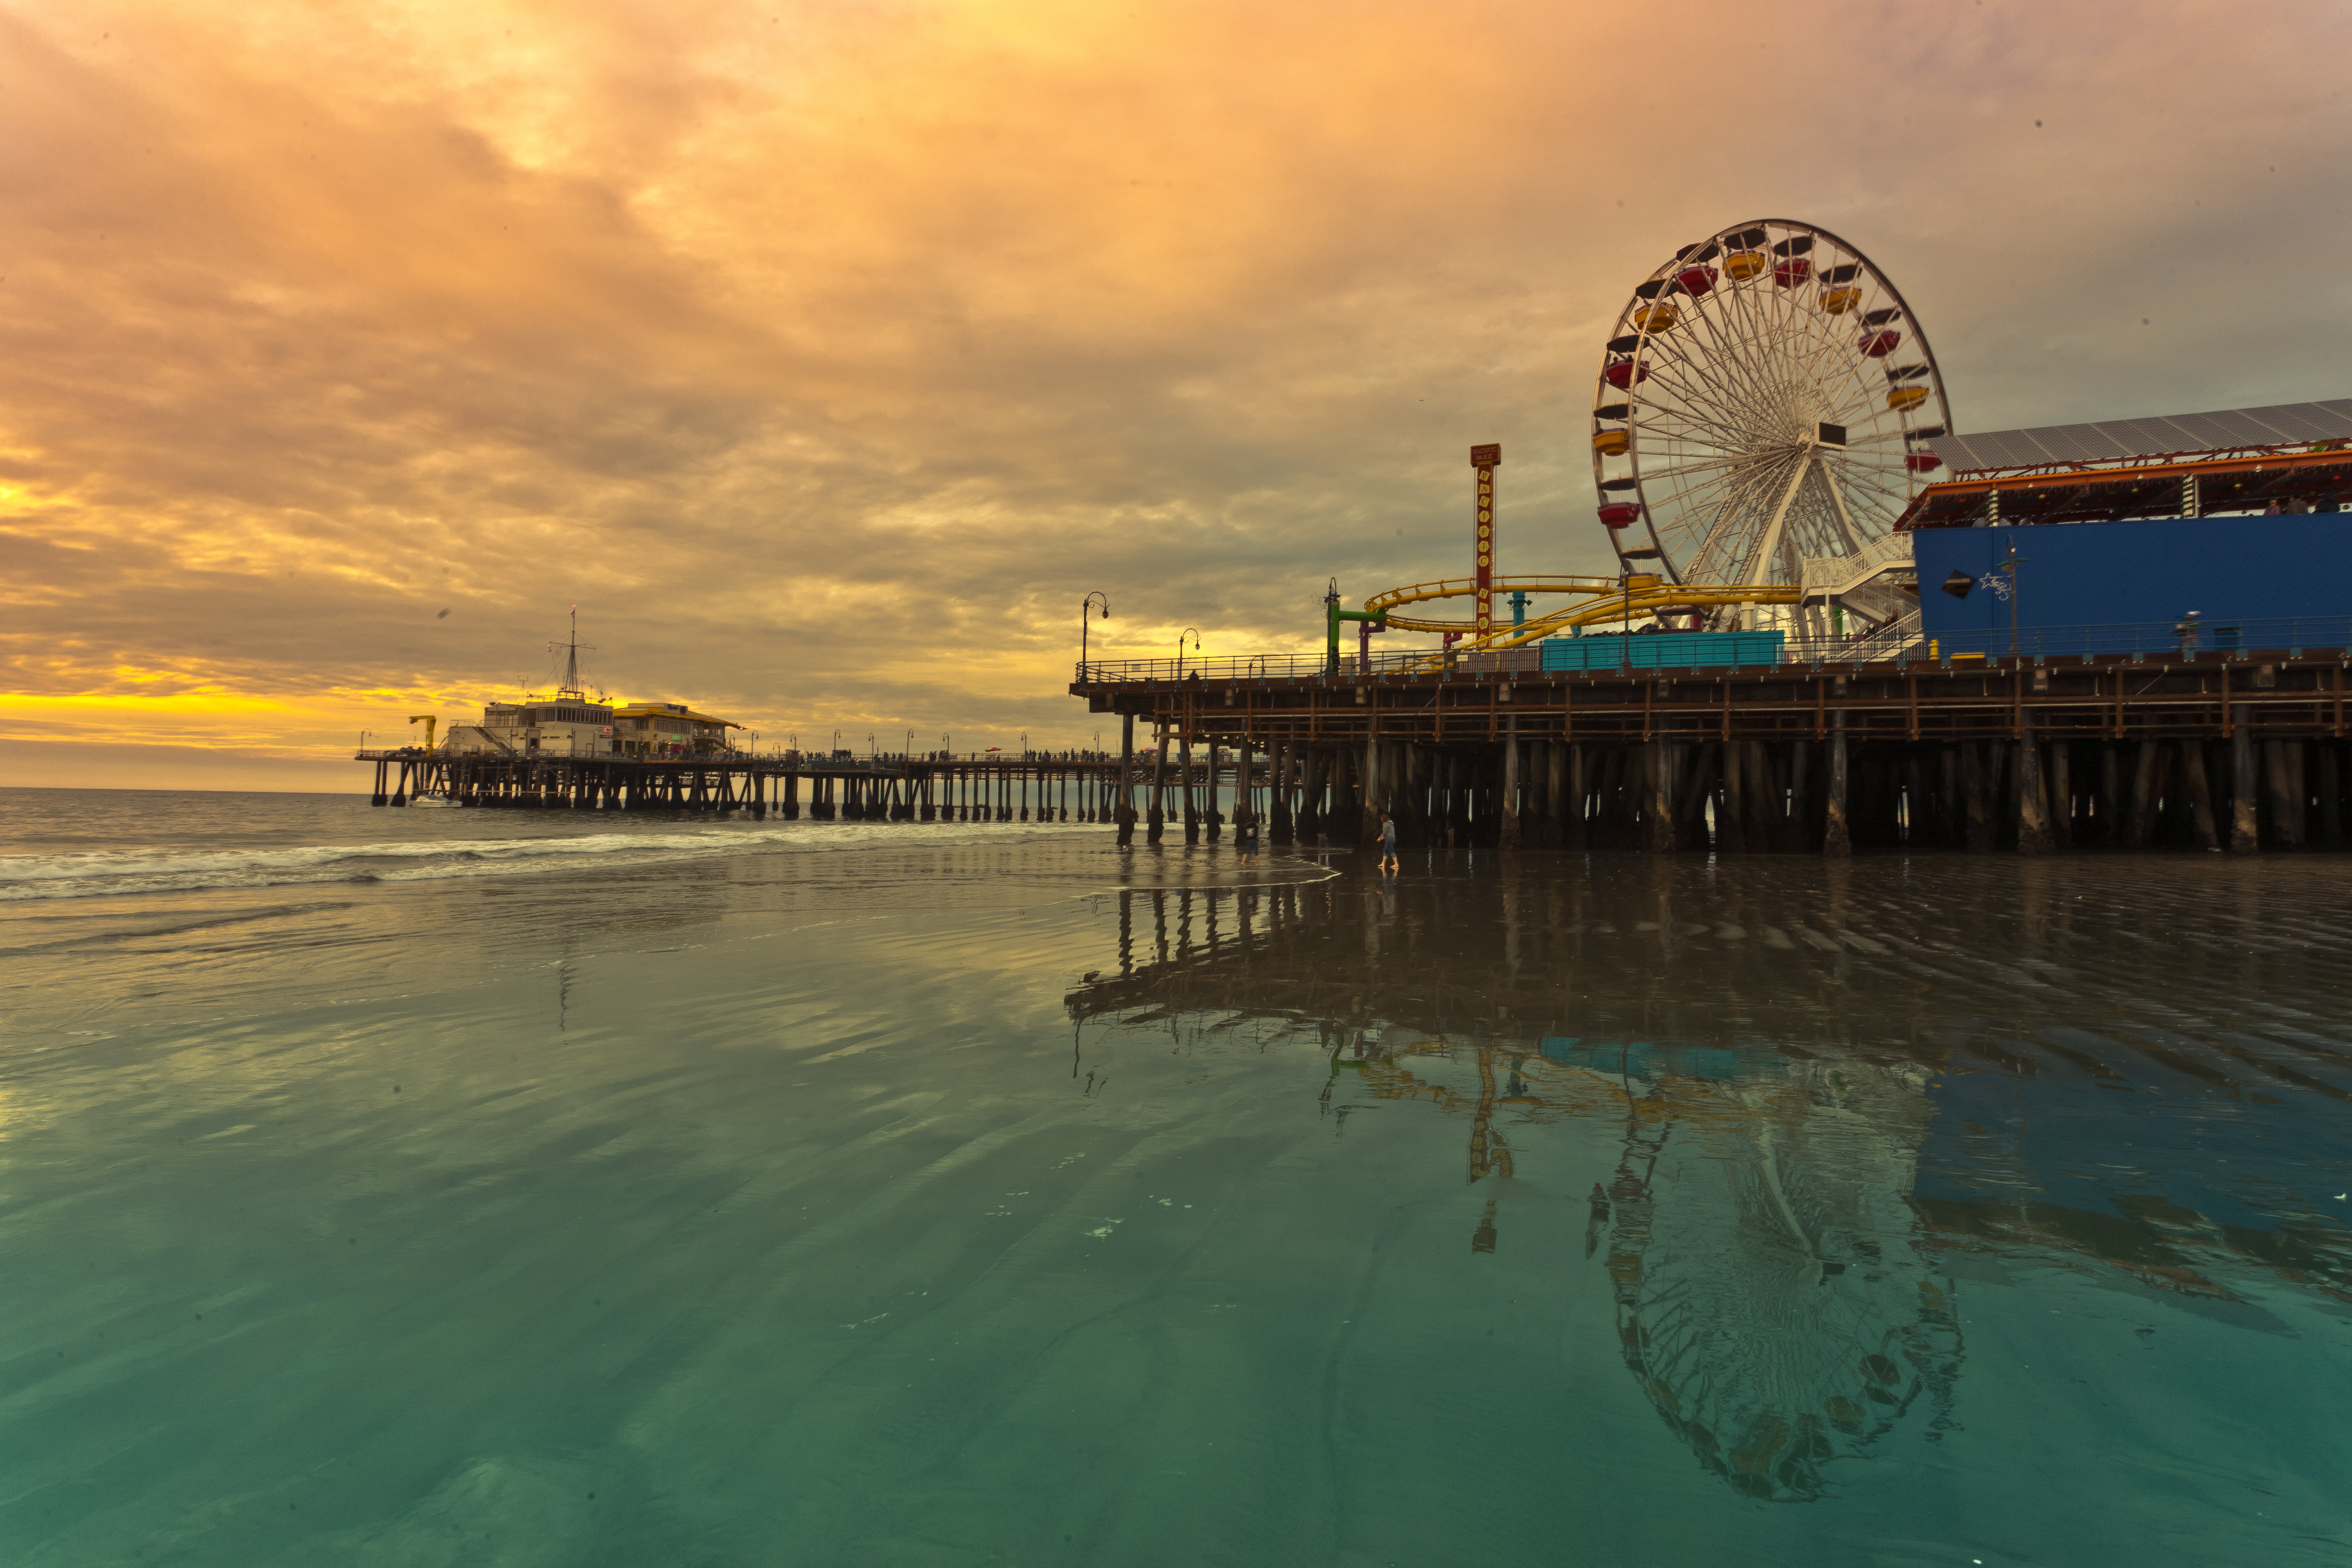 Santa Monica Pier's Pacific Park was named best amusement park in California